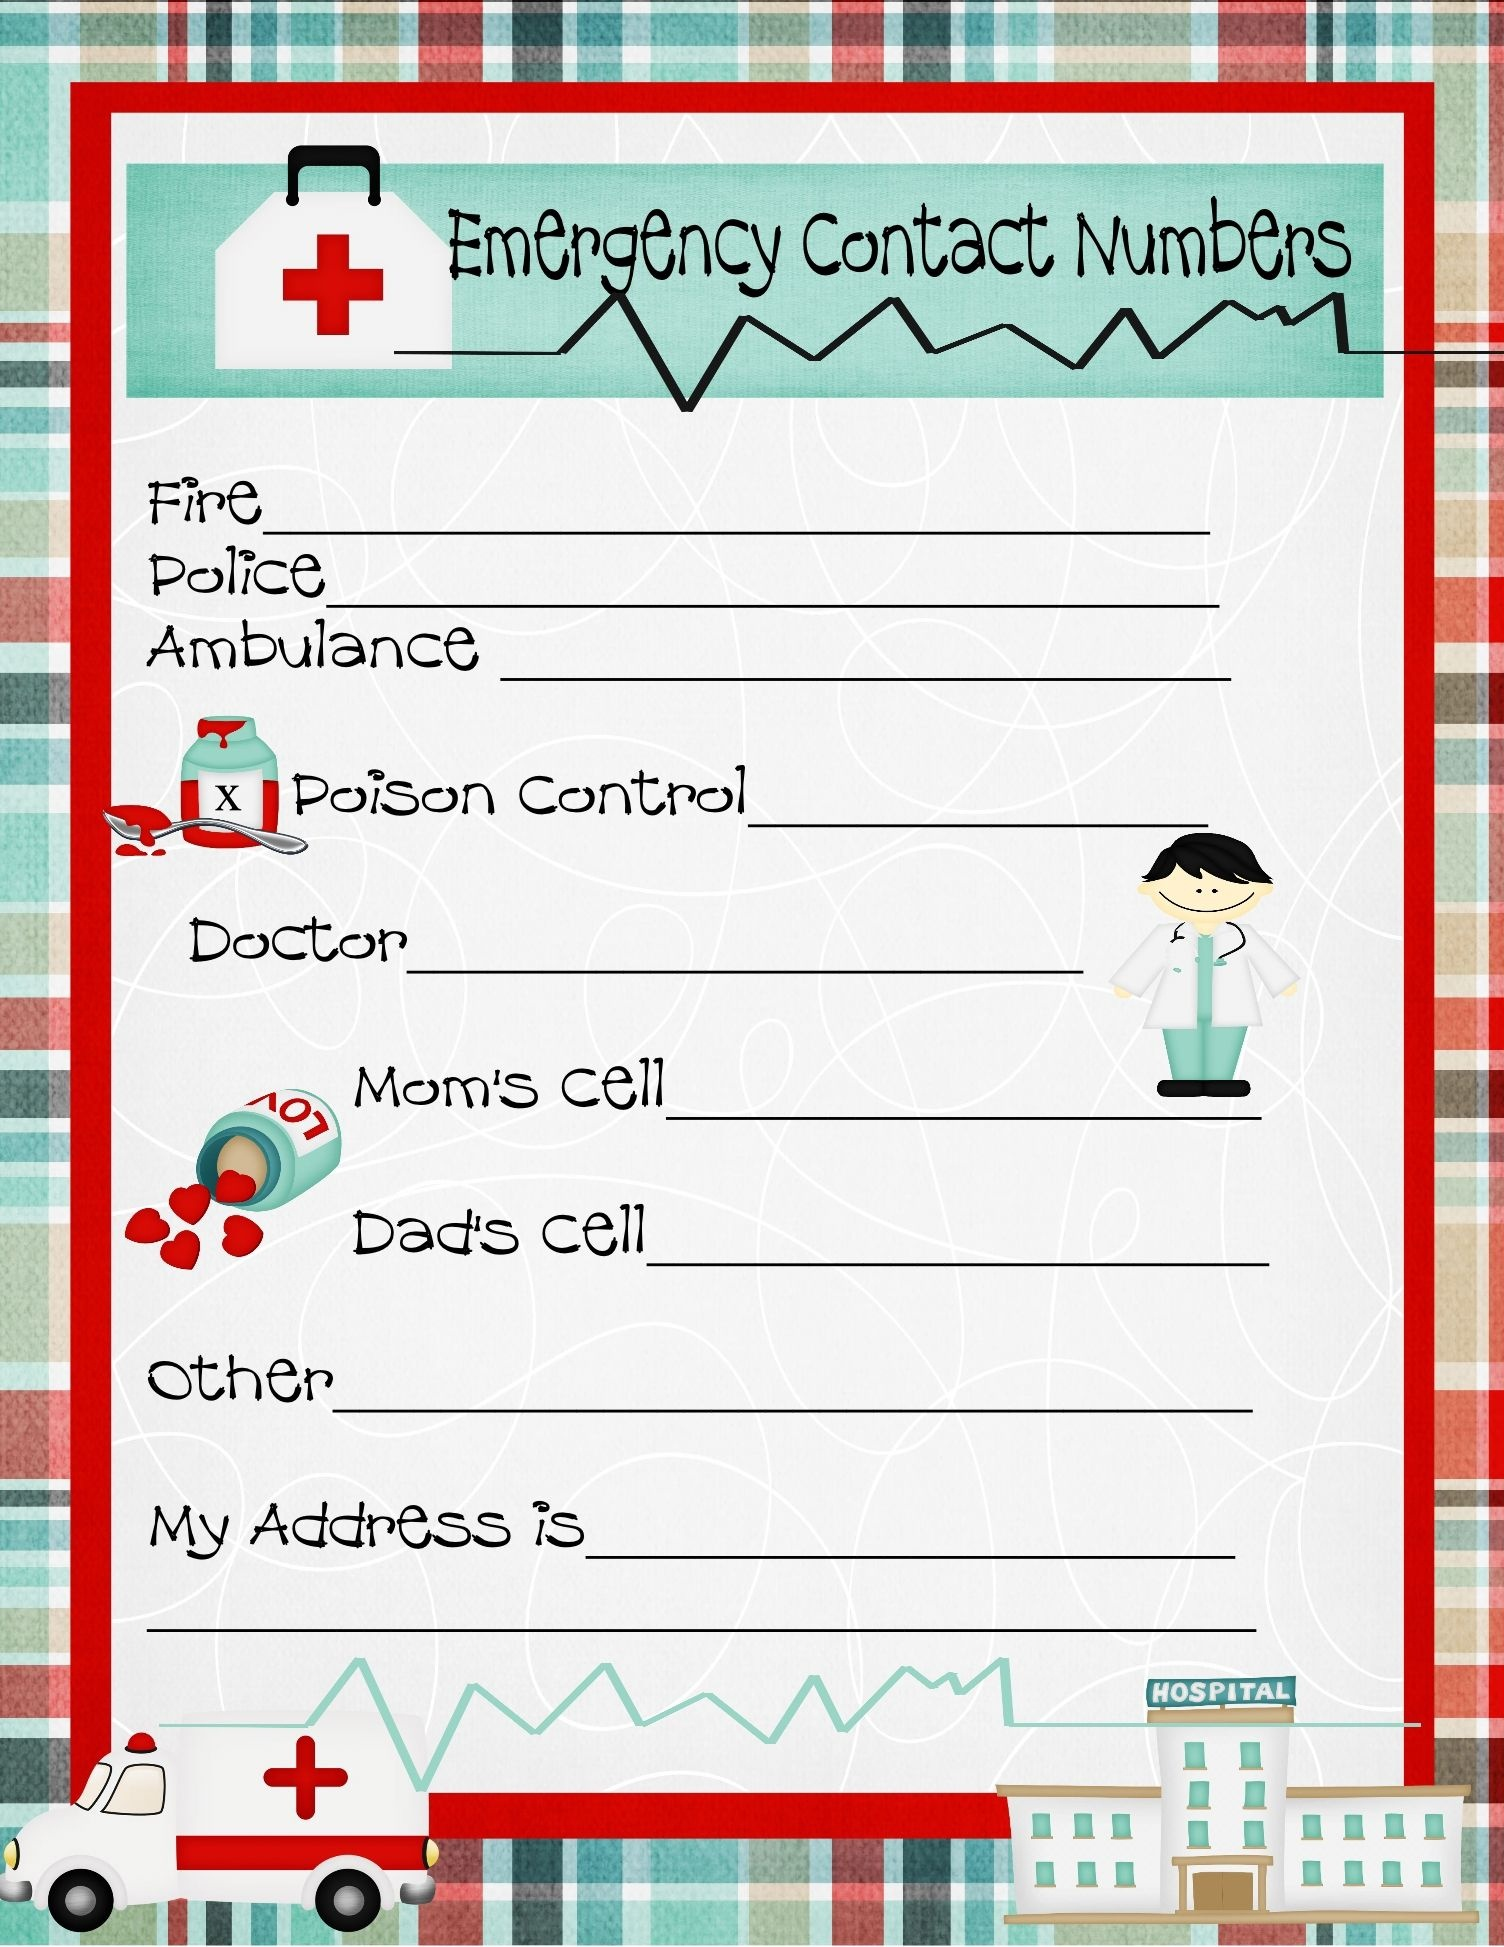 Emergency Numbers Printable | Emergency Contact Phone Numbers And A - Free Printable Emergency Phone List